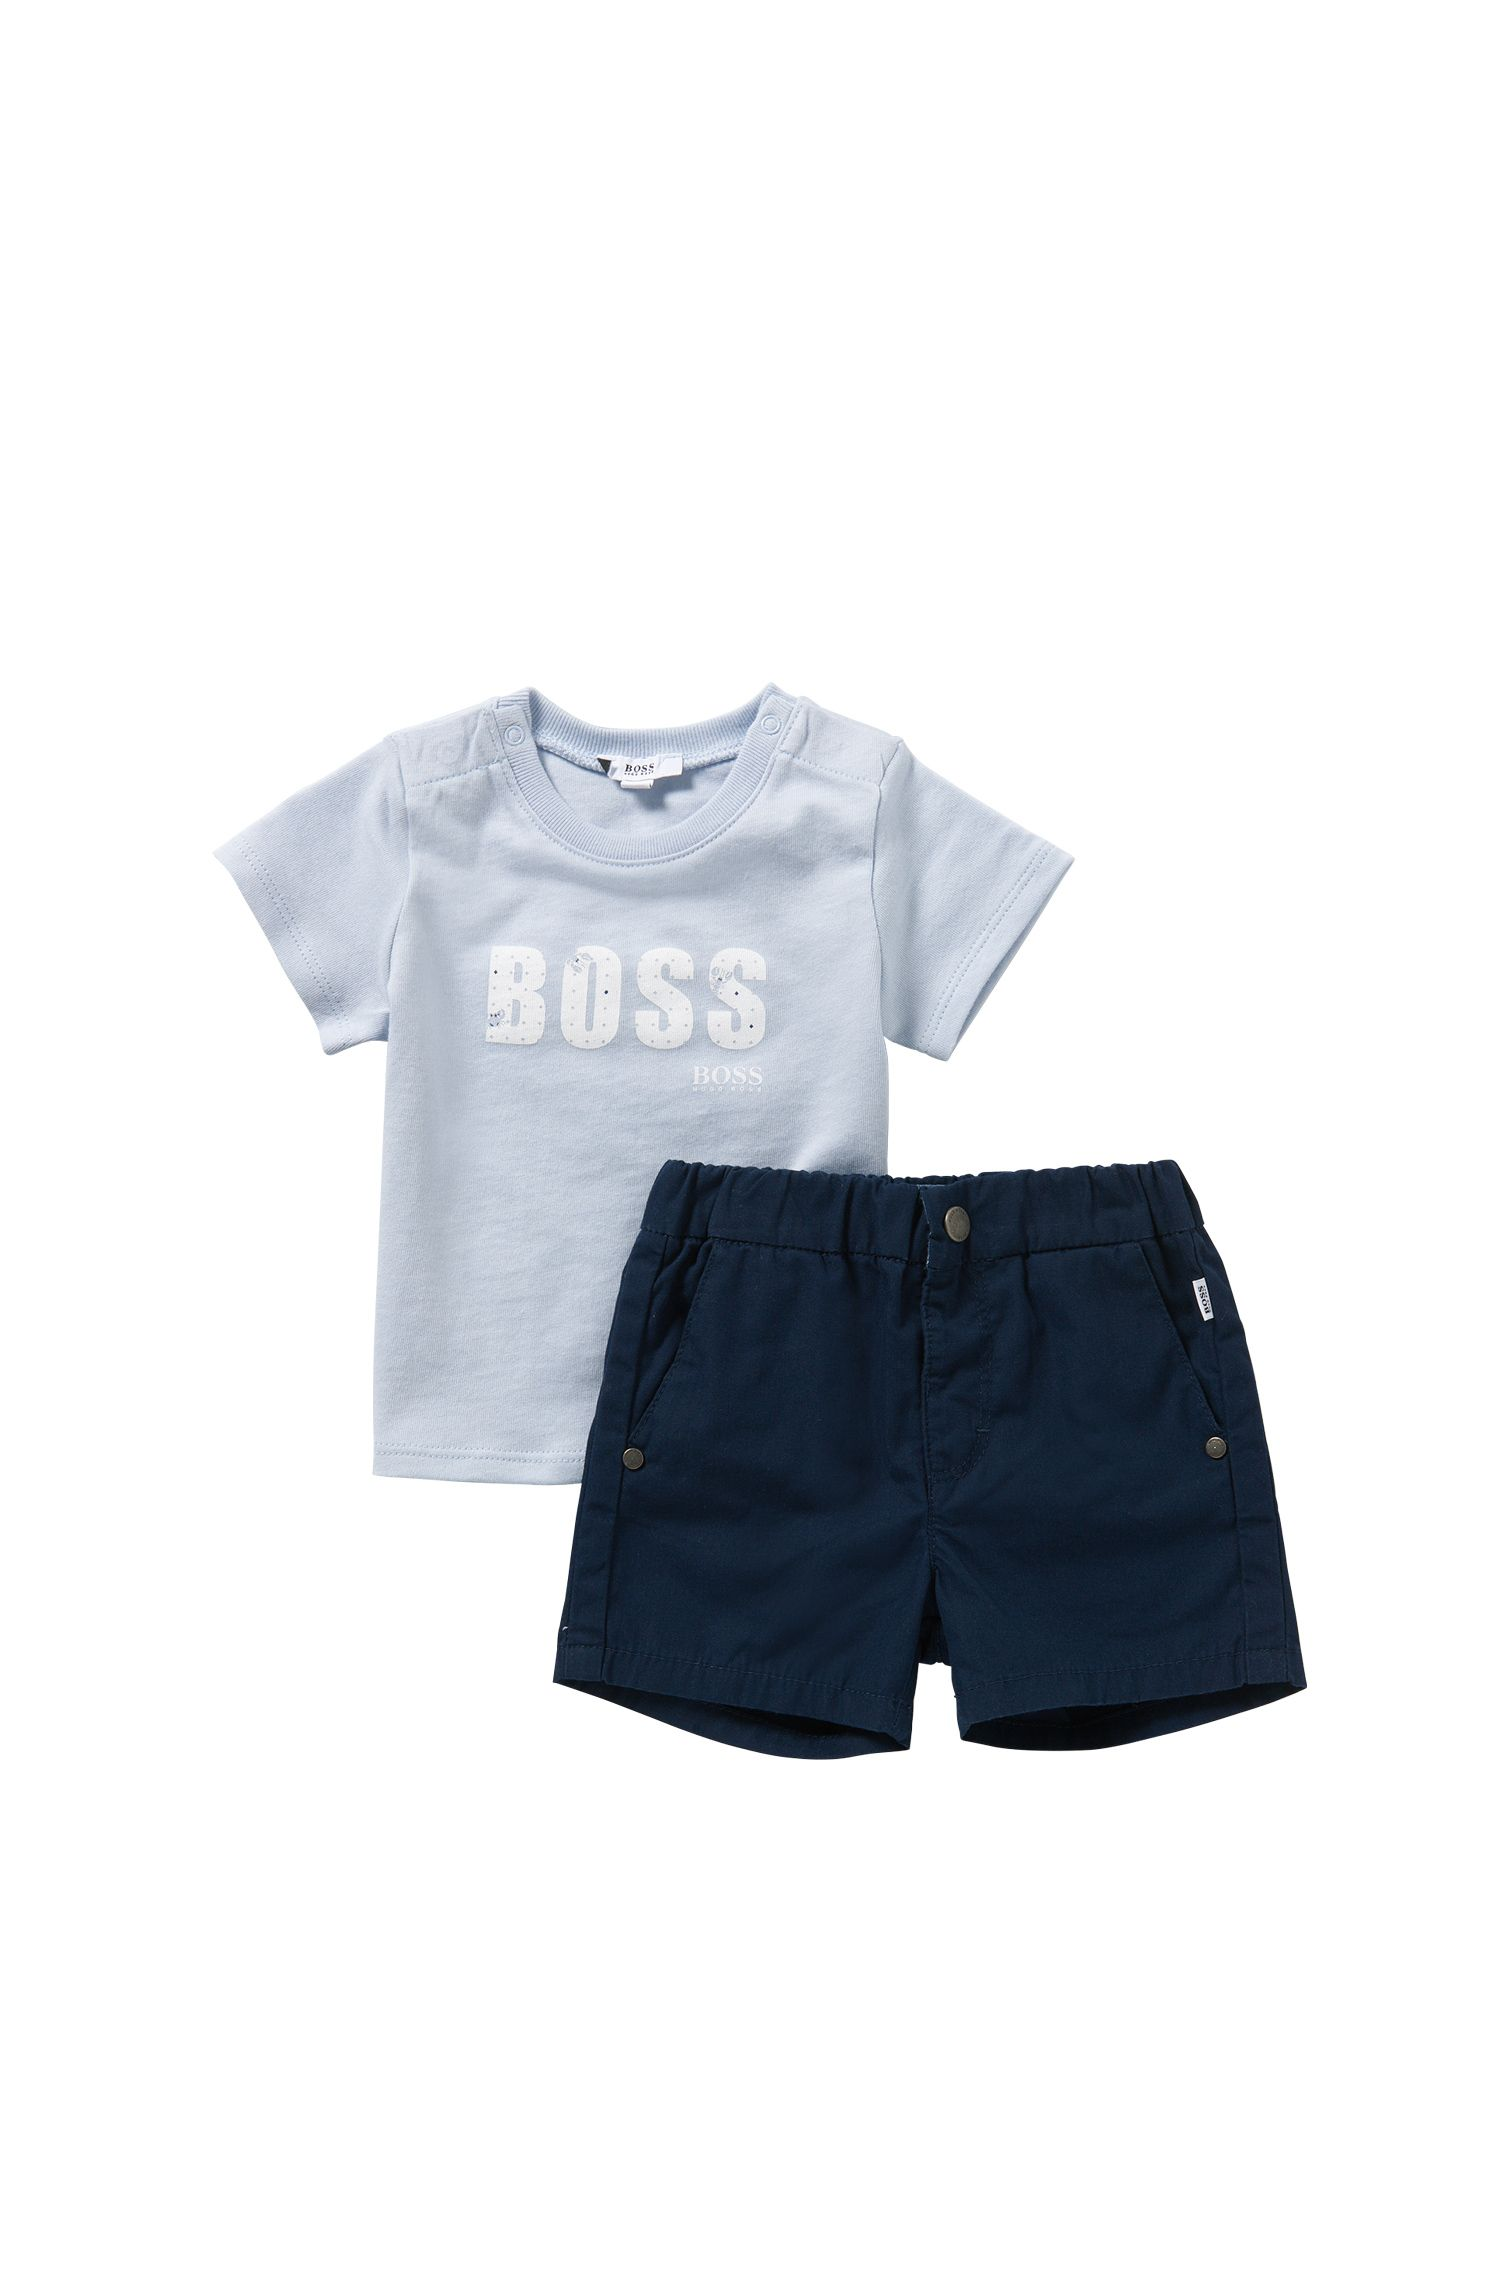 Newborns' set with a t-shirt and shorts in cotton: 'J98155'